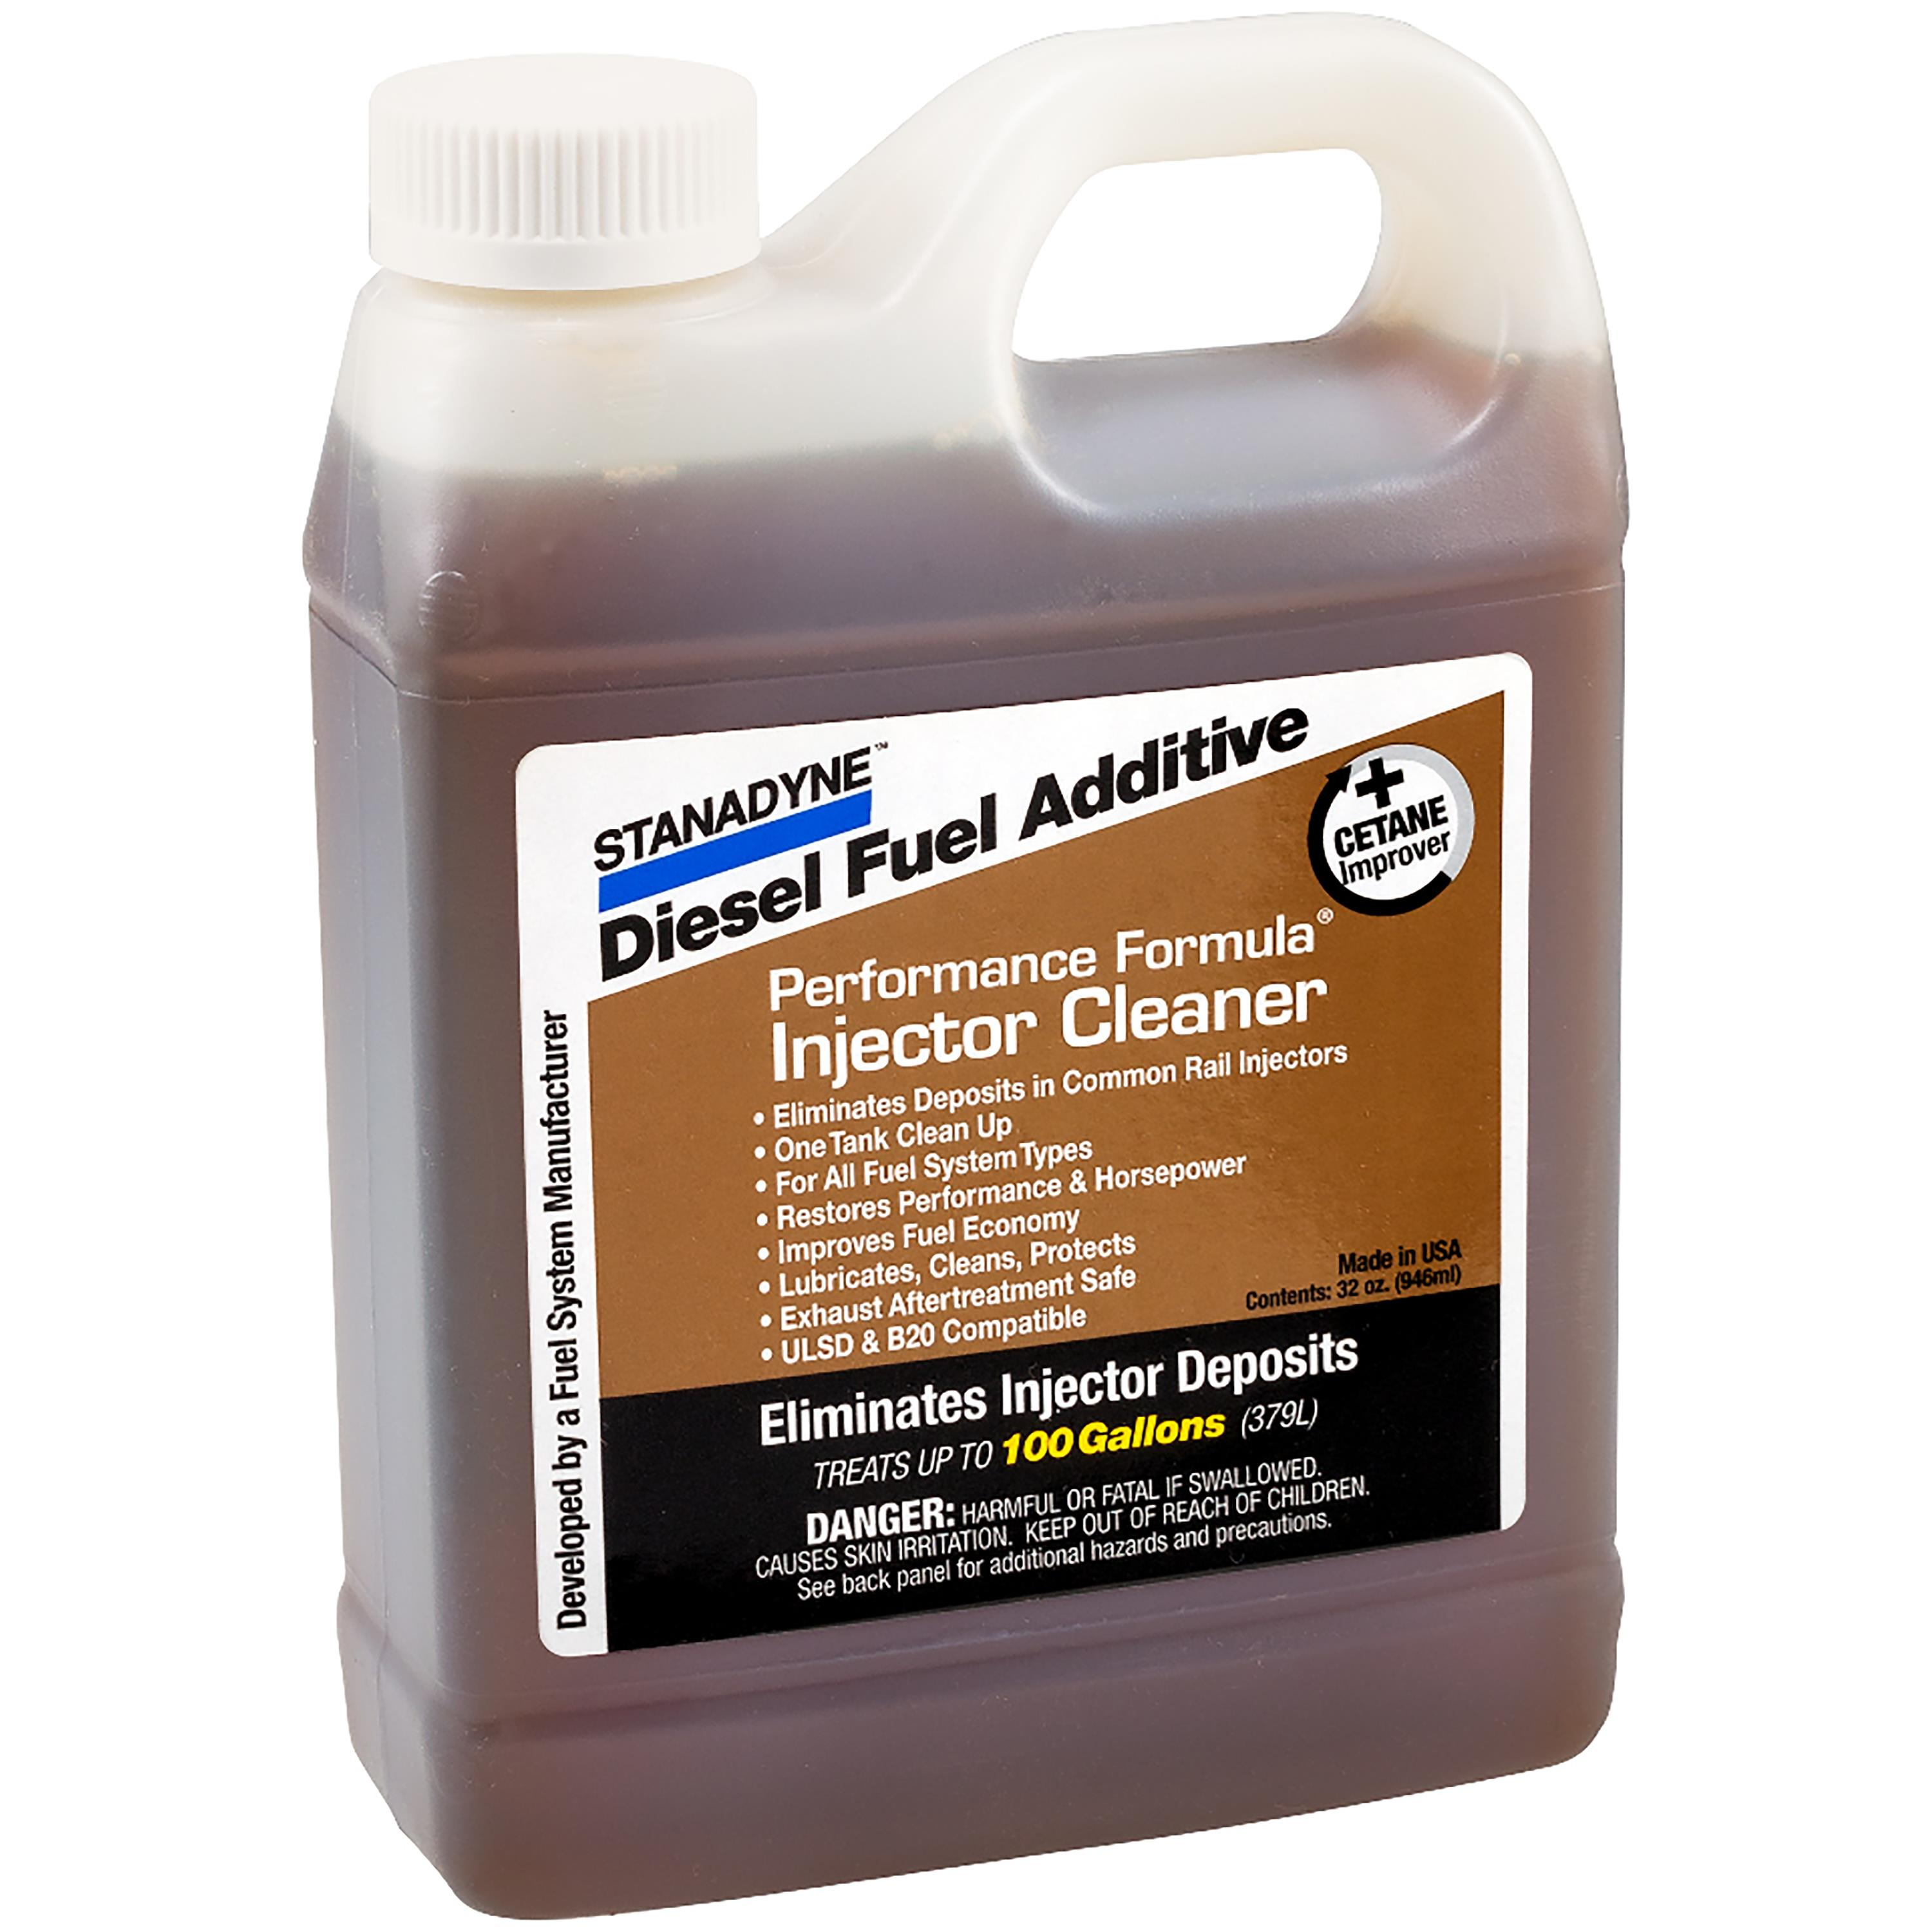 Baldwin Stanadyne Diesel Additive, Injector Cleaner, 32 oz  Jug (Case of 12)